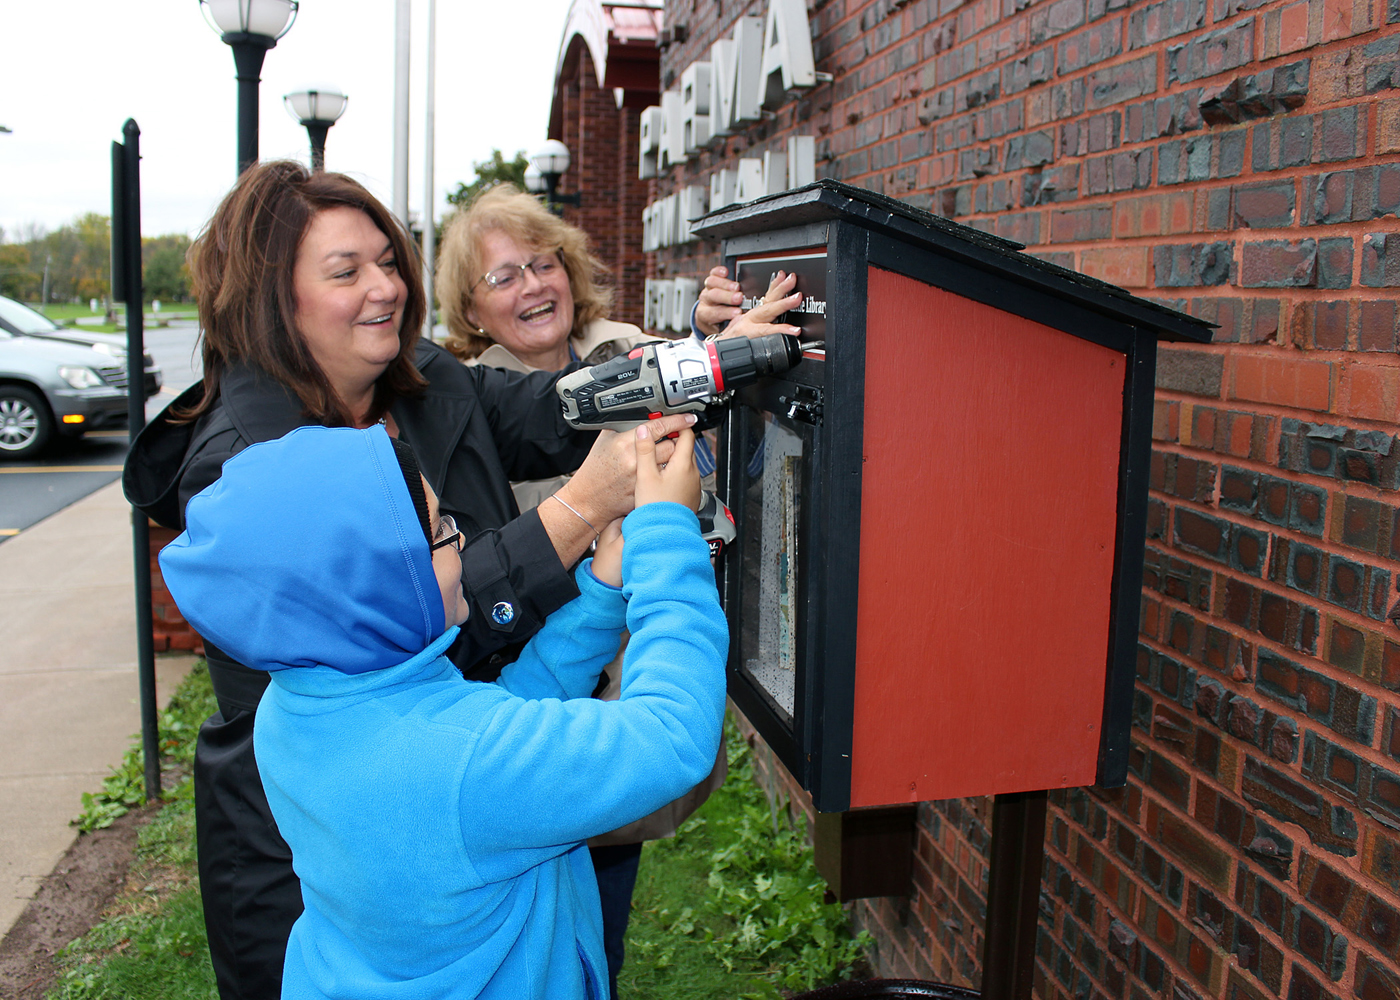 Aidan Harney, his mom Stephanie Harney (center), and Parma Town Clerk Donna Curry install a name plate on the new Little Free Library at Parma Town Hall. The library was made possible by Hilton Cares, an organization dedicated to projects that impact the health and well being of children in the Hilton School District. Provided photo